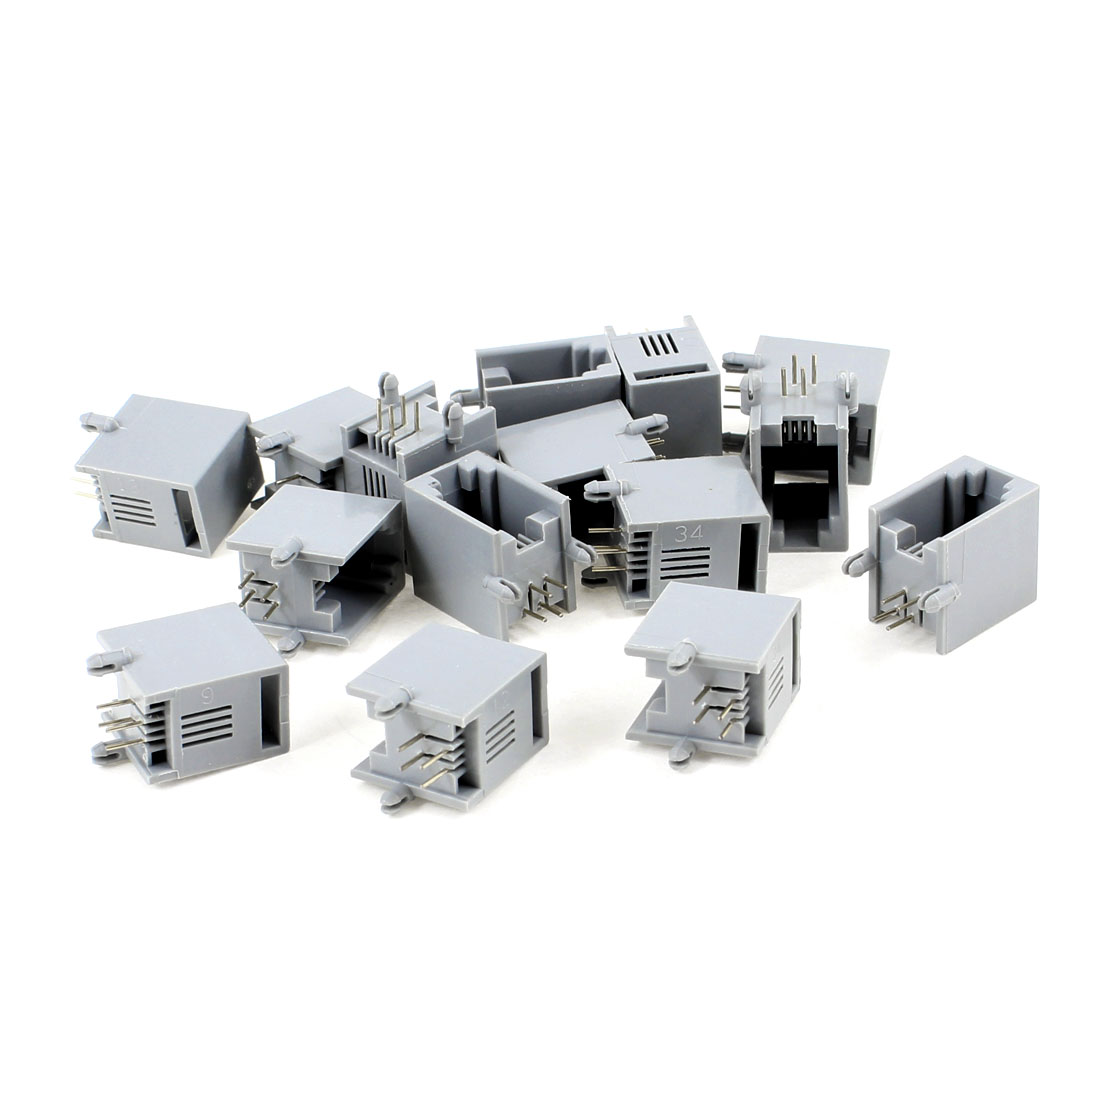 15 Pcs Gray Plastic Unshielded RJ9 4P4C Network Modular PCB Connector Jacks